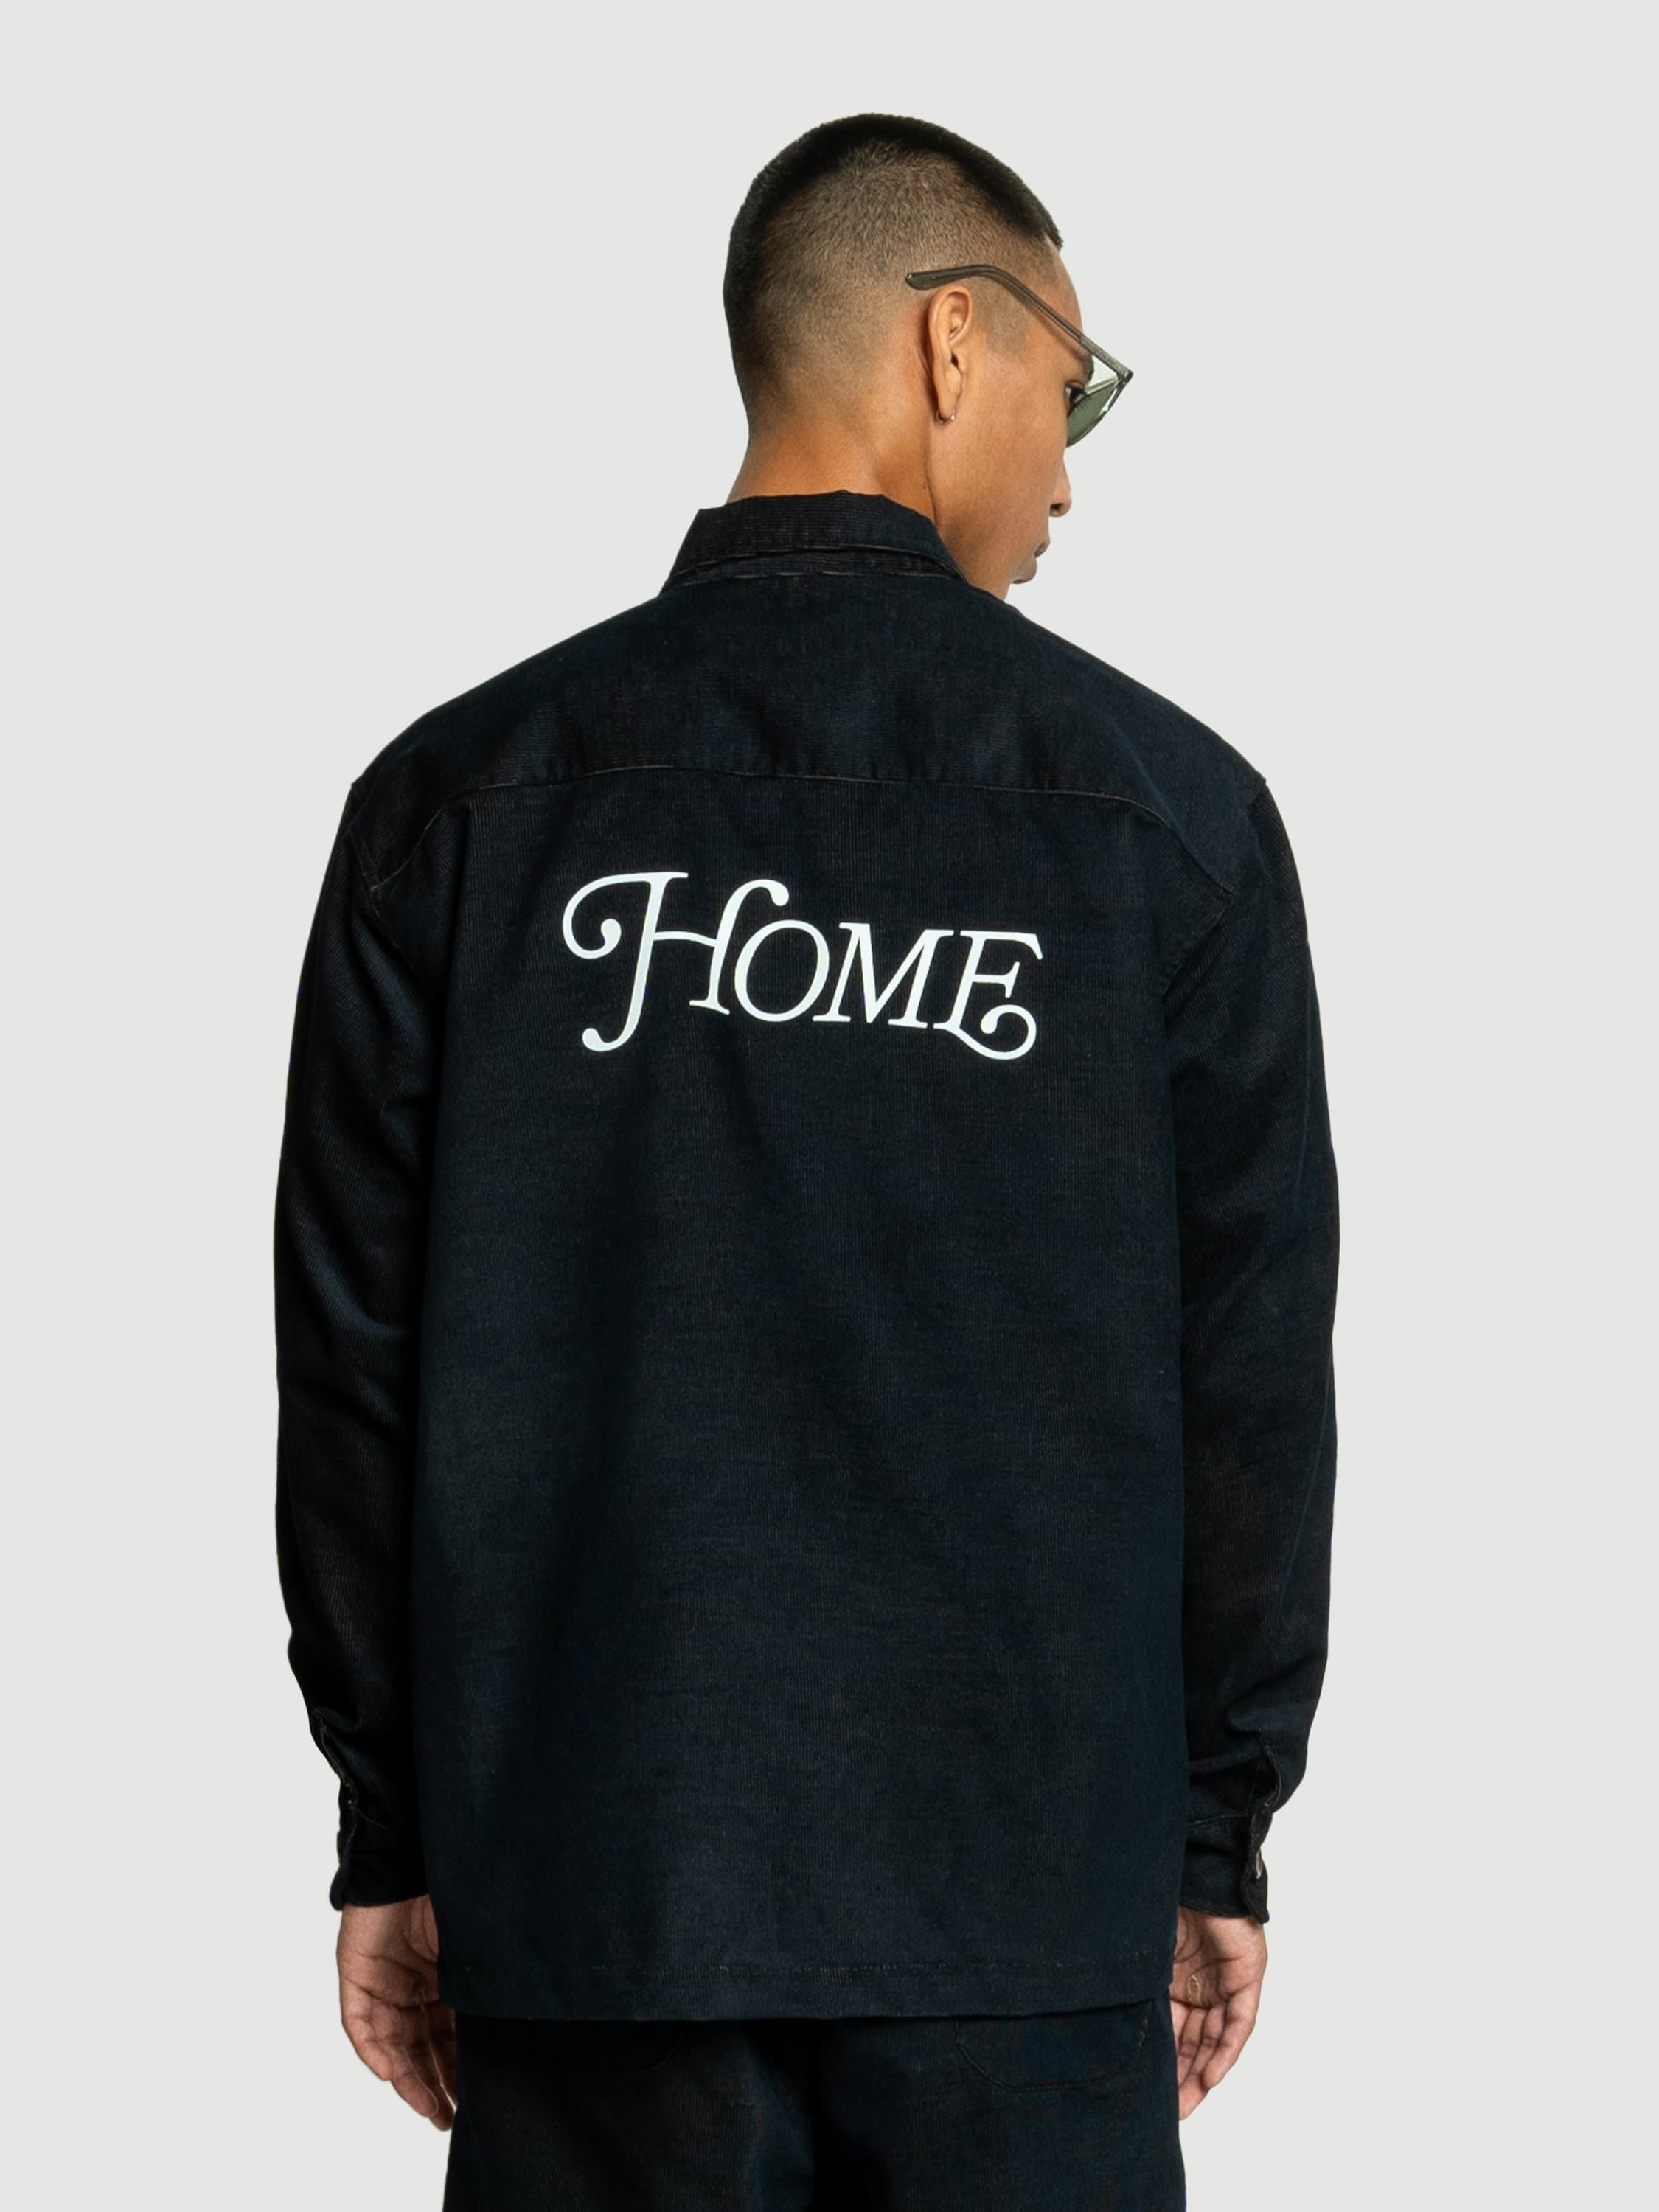 Home Black Corduroy Jacket